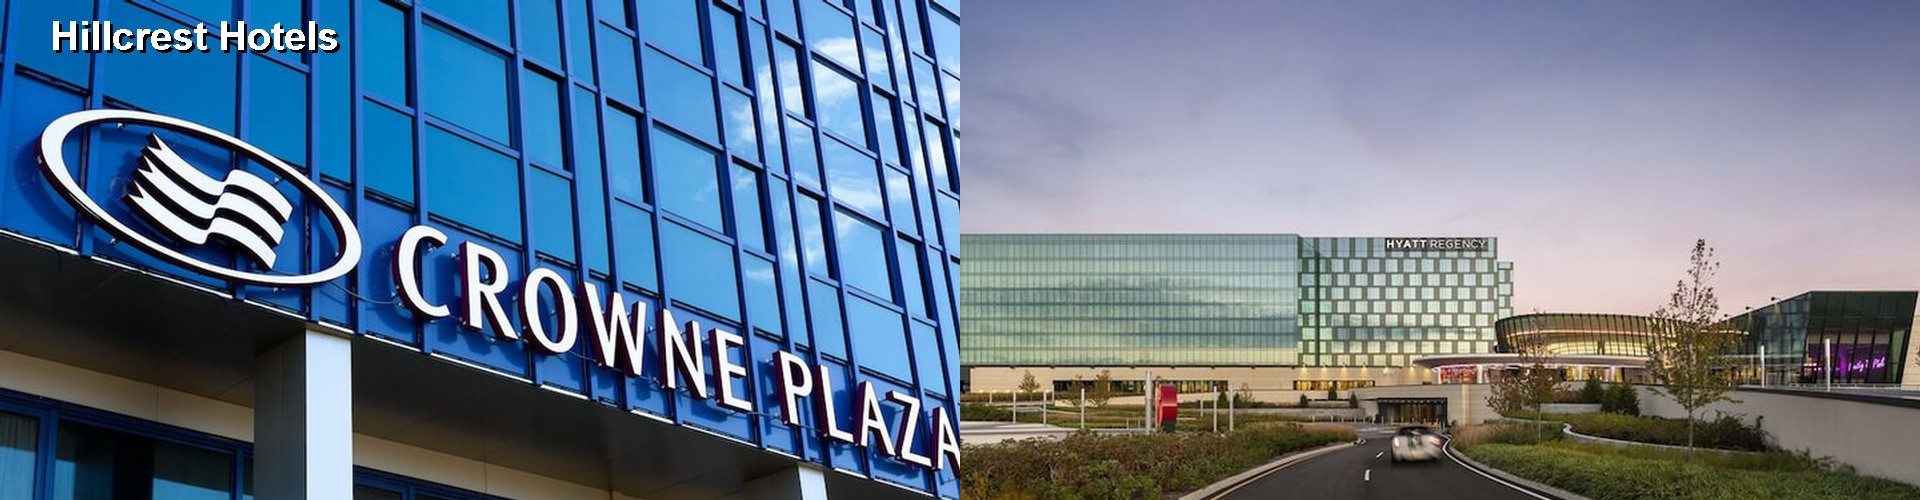 2 Best Hotels near Hillcrest